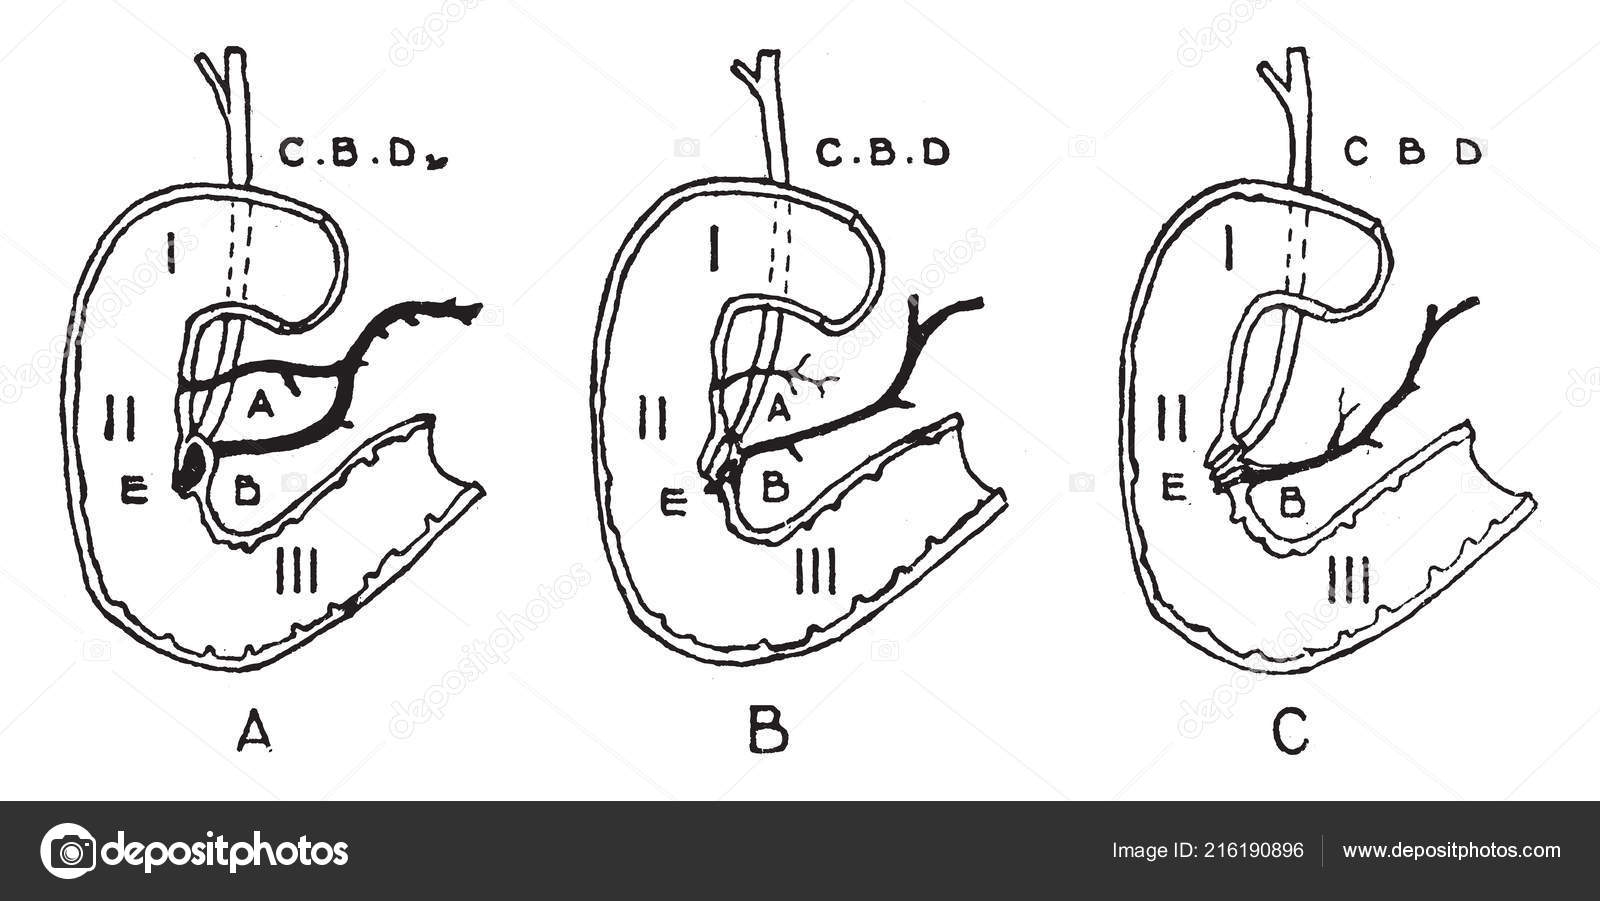 Diagram Represents Variations Termination Pancreatic Bile ... on wiring diagram, termination icon, termination flowchart, termination process, termination sequence, electricity distribution, termination switch wiring,